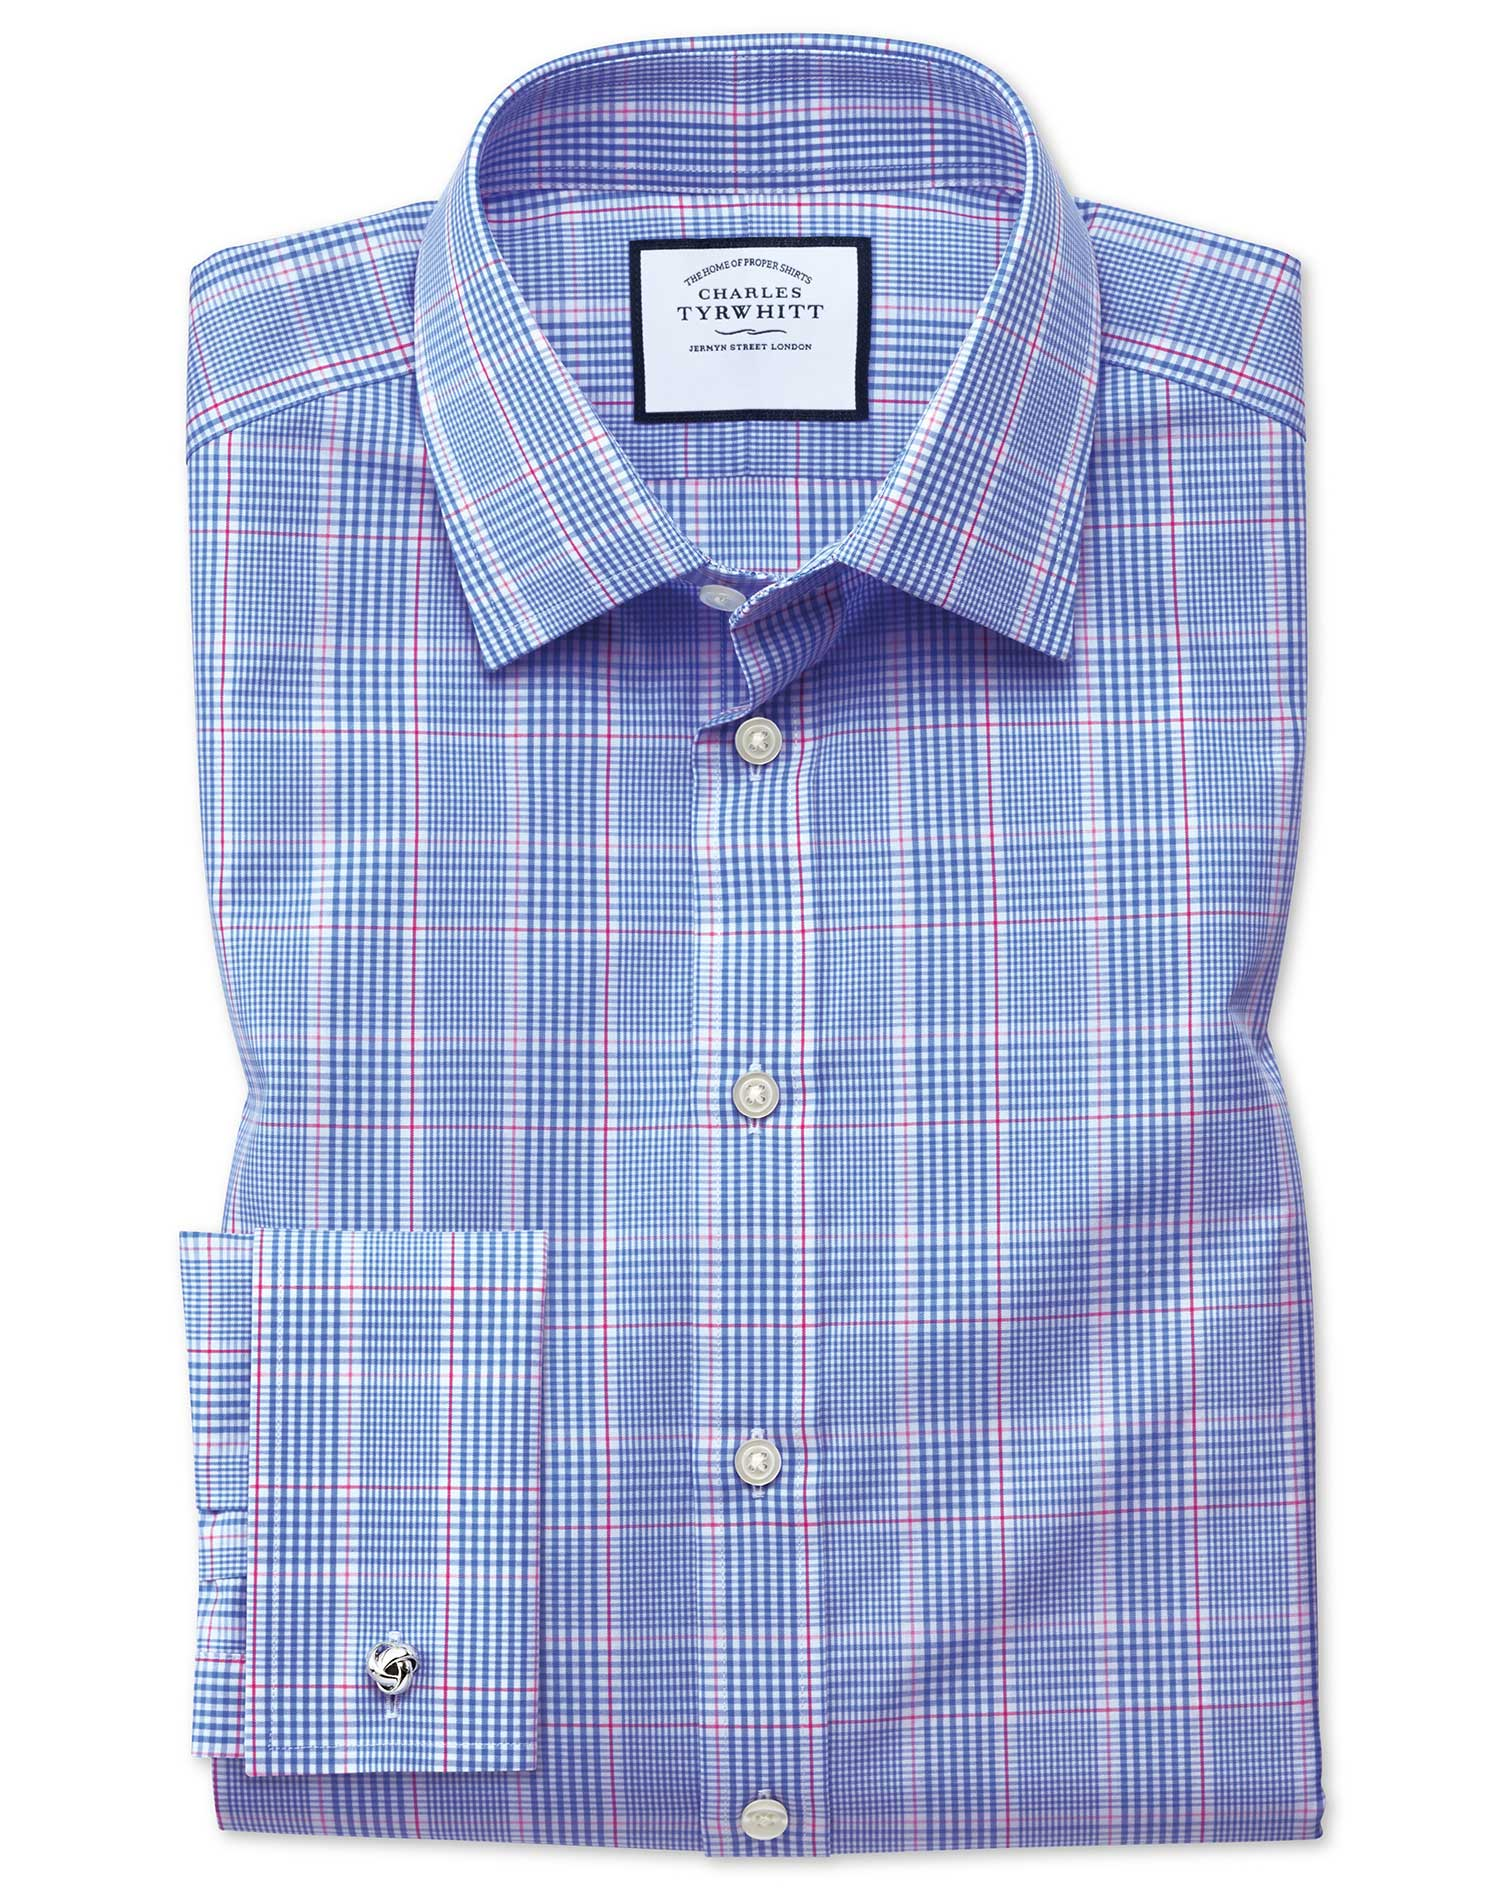 Slim Fit Prince Of Wales Blue Cotton Formal Shirt Double Cuff Size 17.5/34 by Charles Tyrwhitt